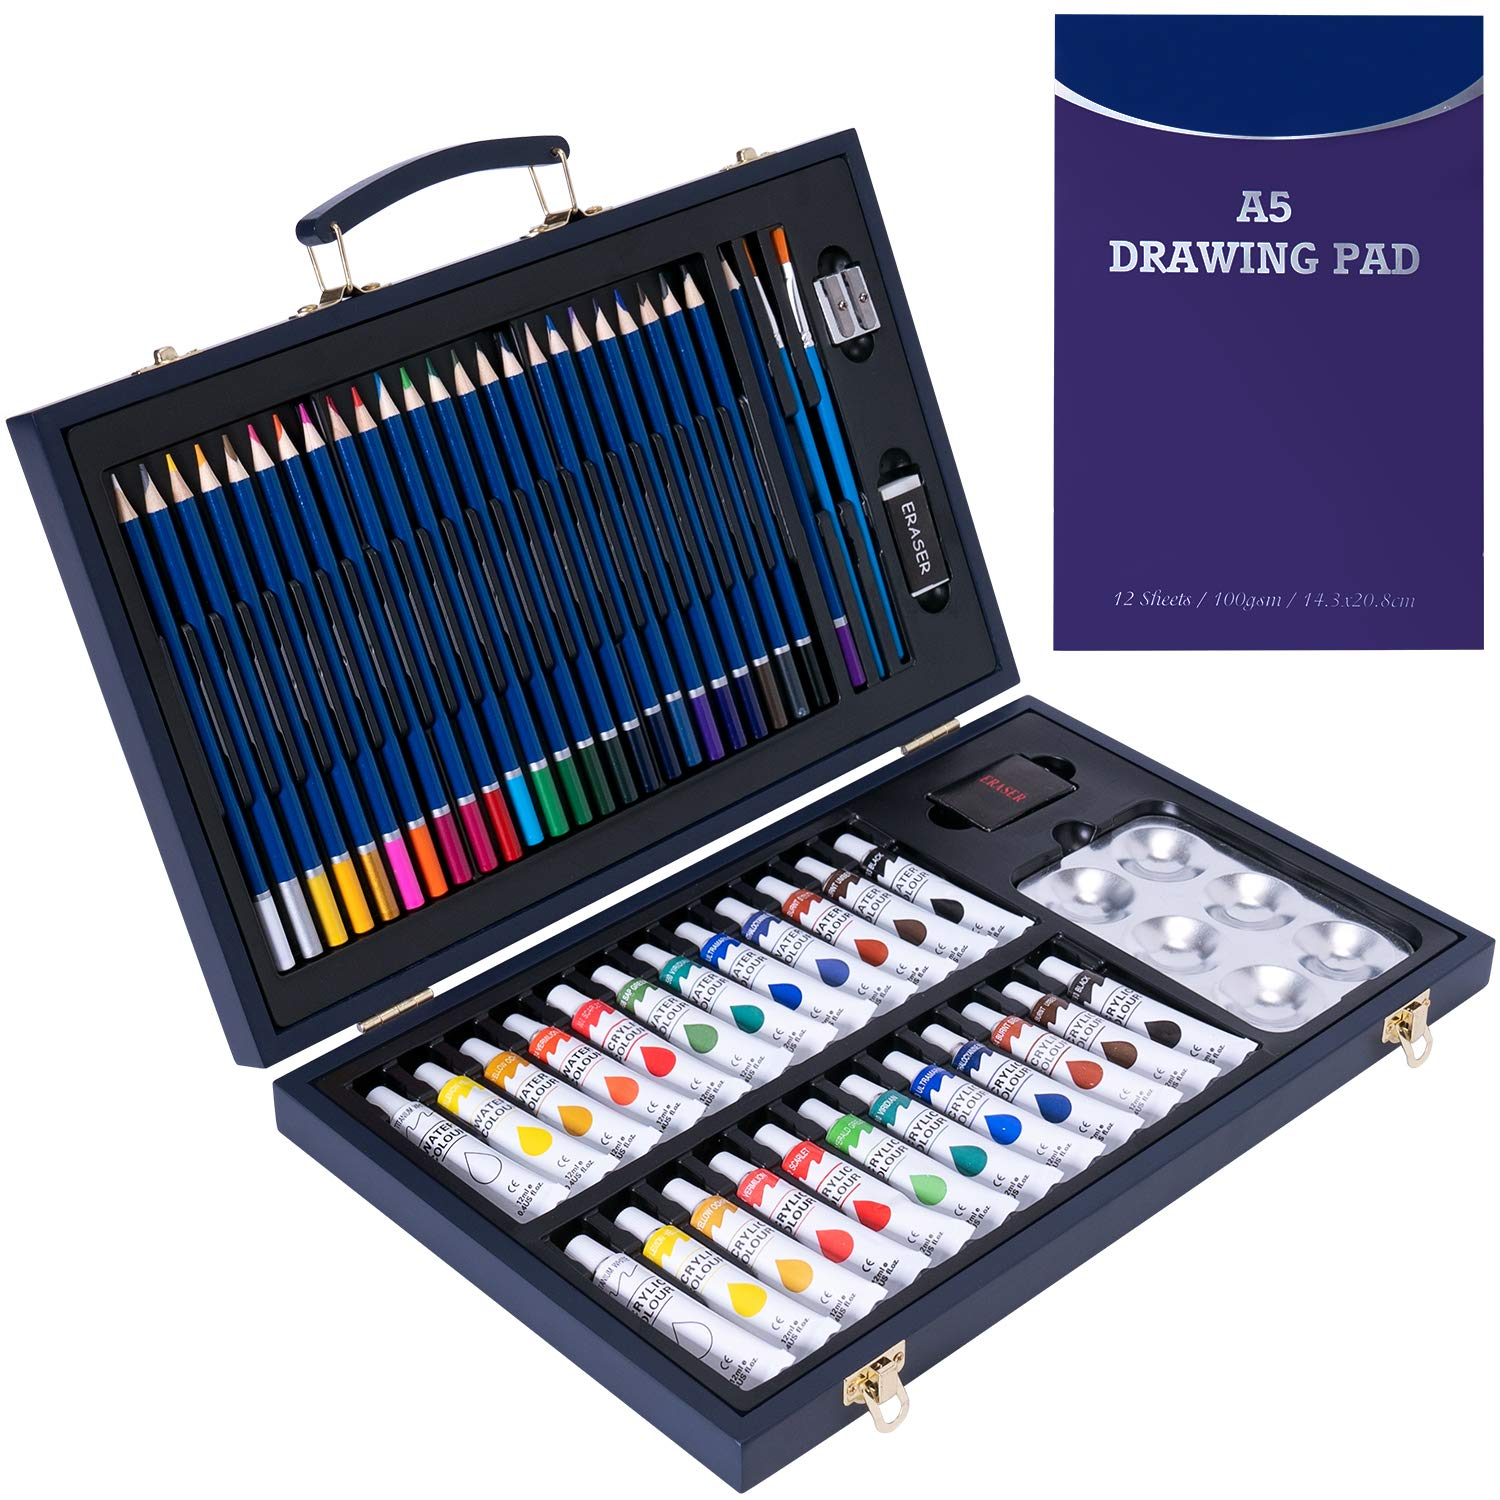 56 Piece Professional Art Set Deluxe Art Set in Portable Wooden Case-Painting & Drawing Set Professional Art Kit with 1 Drawing Pad for Kids, Teens and Adults/Gift …